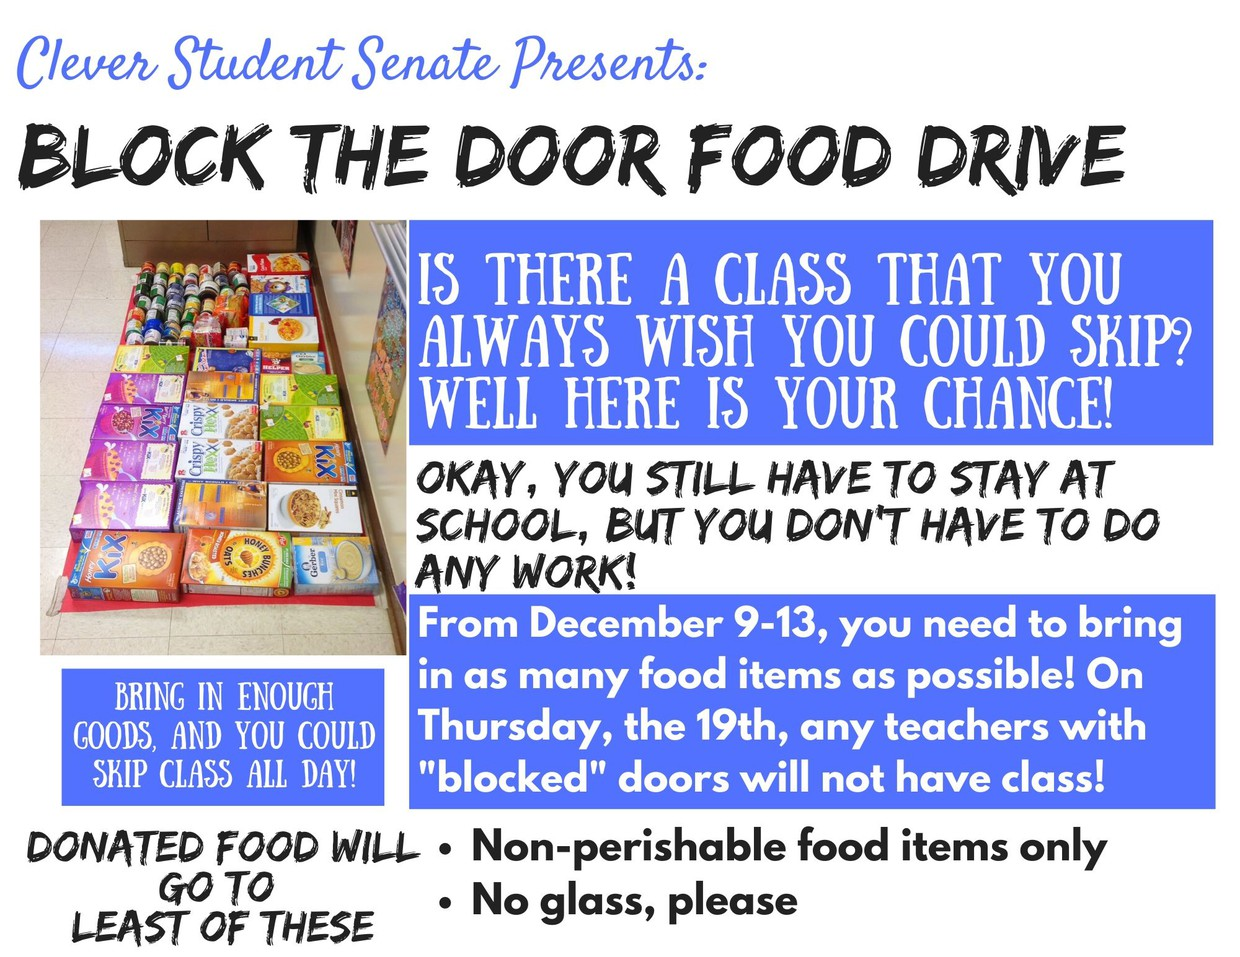 Last year this drive raised over several thousand pounds of food. Let's try to beat our total from last year.